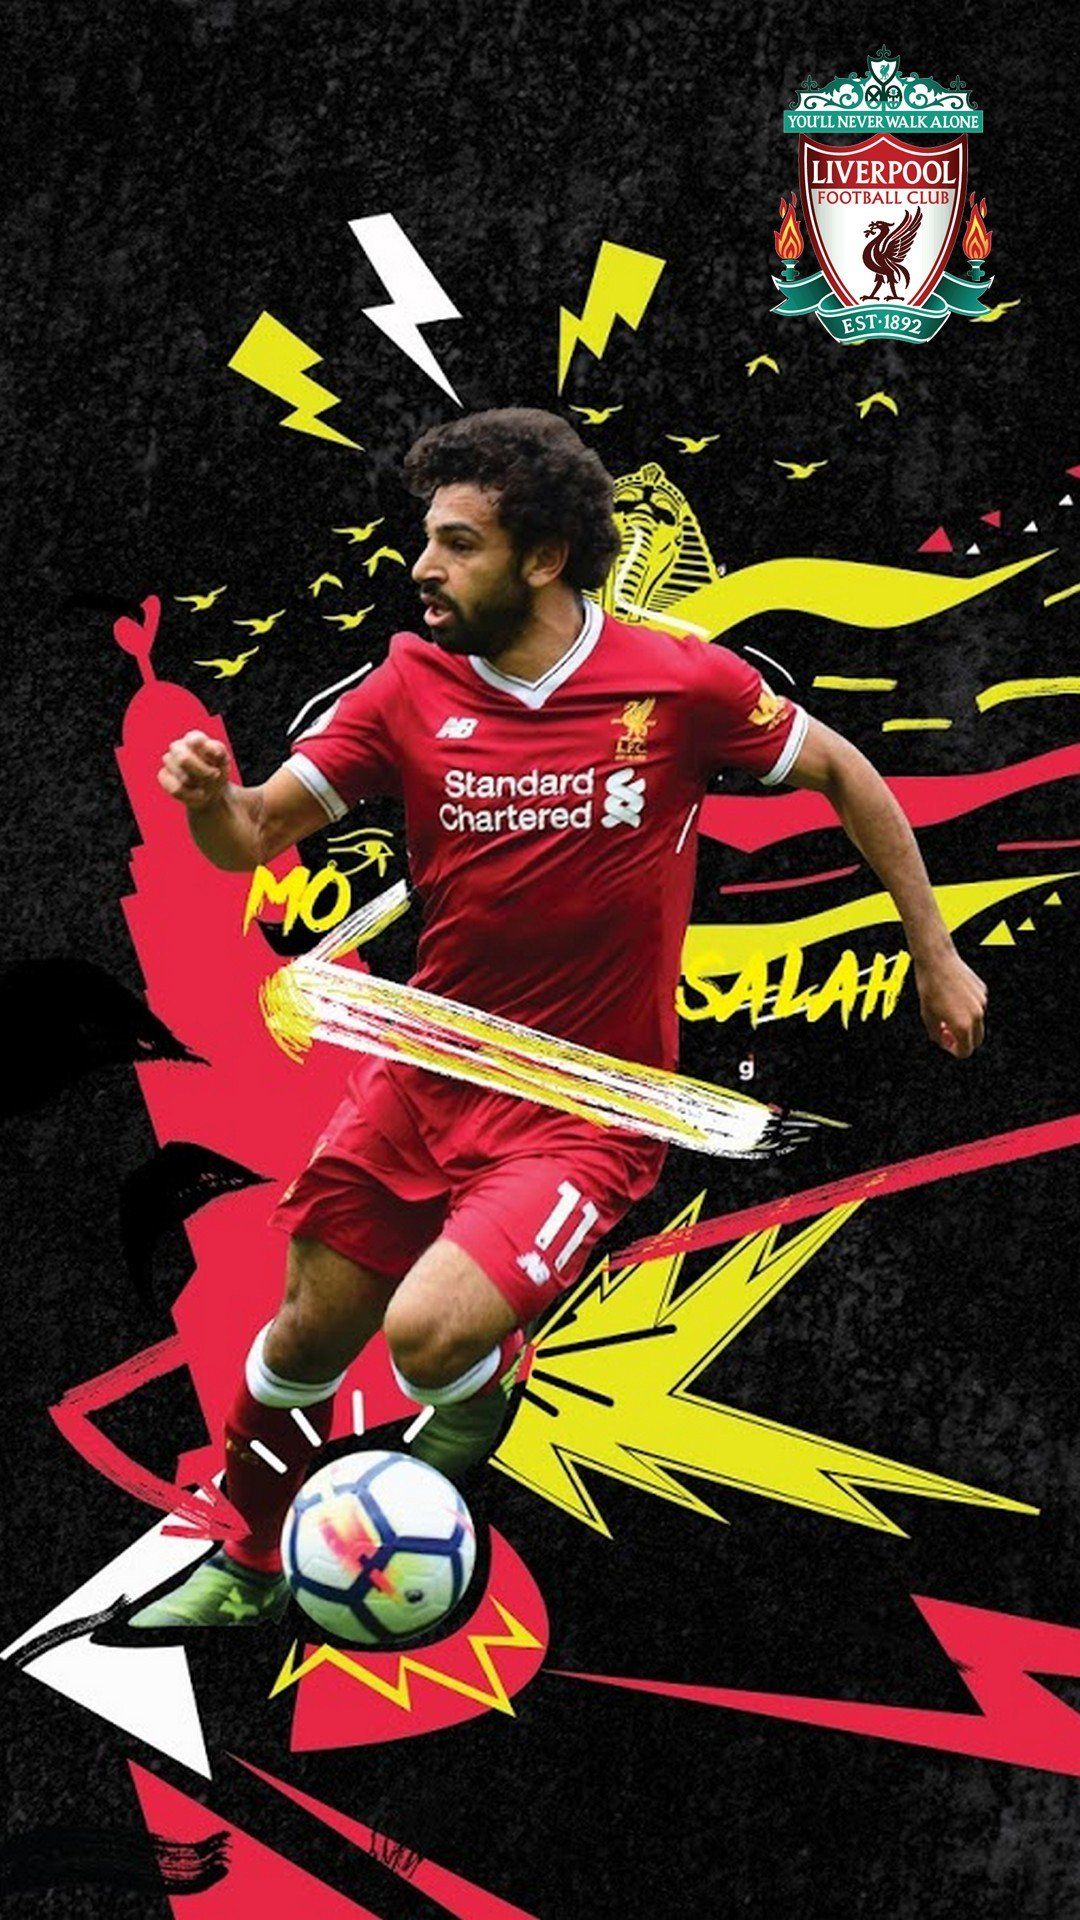 Free Download Mohamed Salah Pictures Wallpaper Android 2019